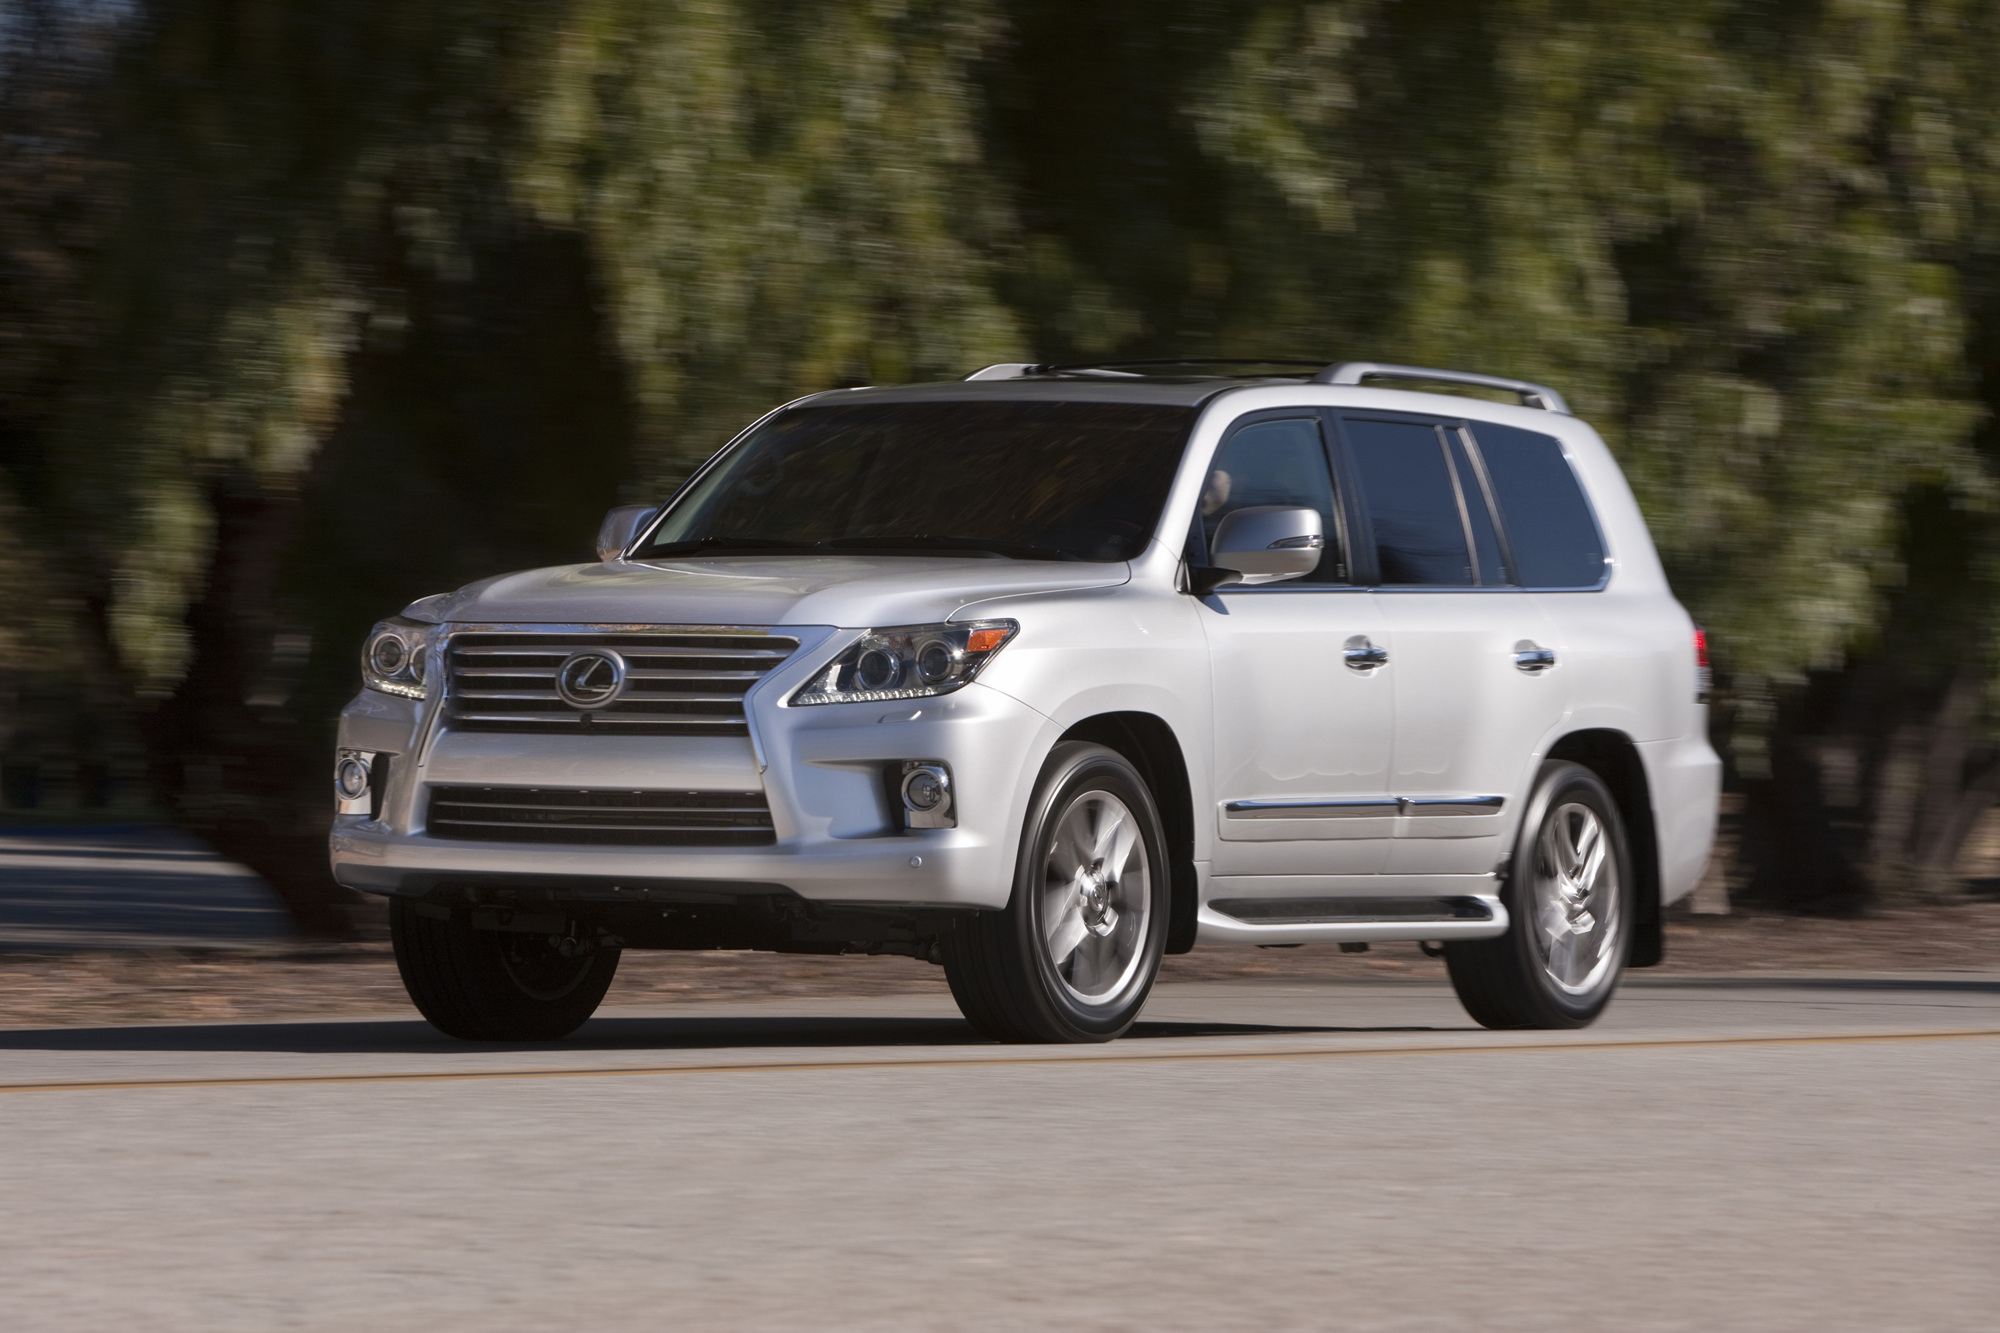 l of review front f video courtesy rx dykes picture exterior alex sport suv lexus